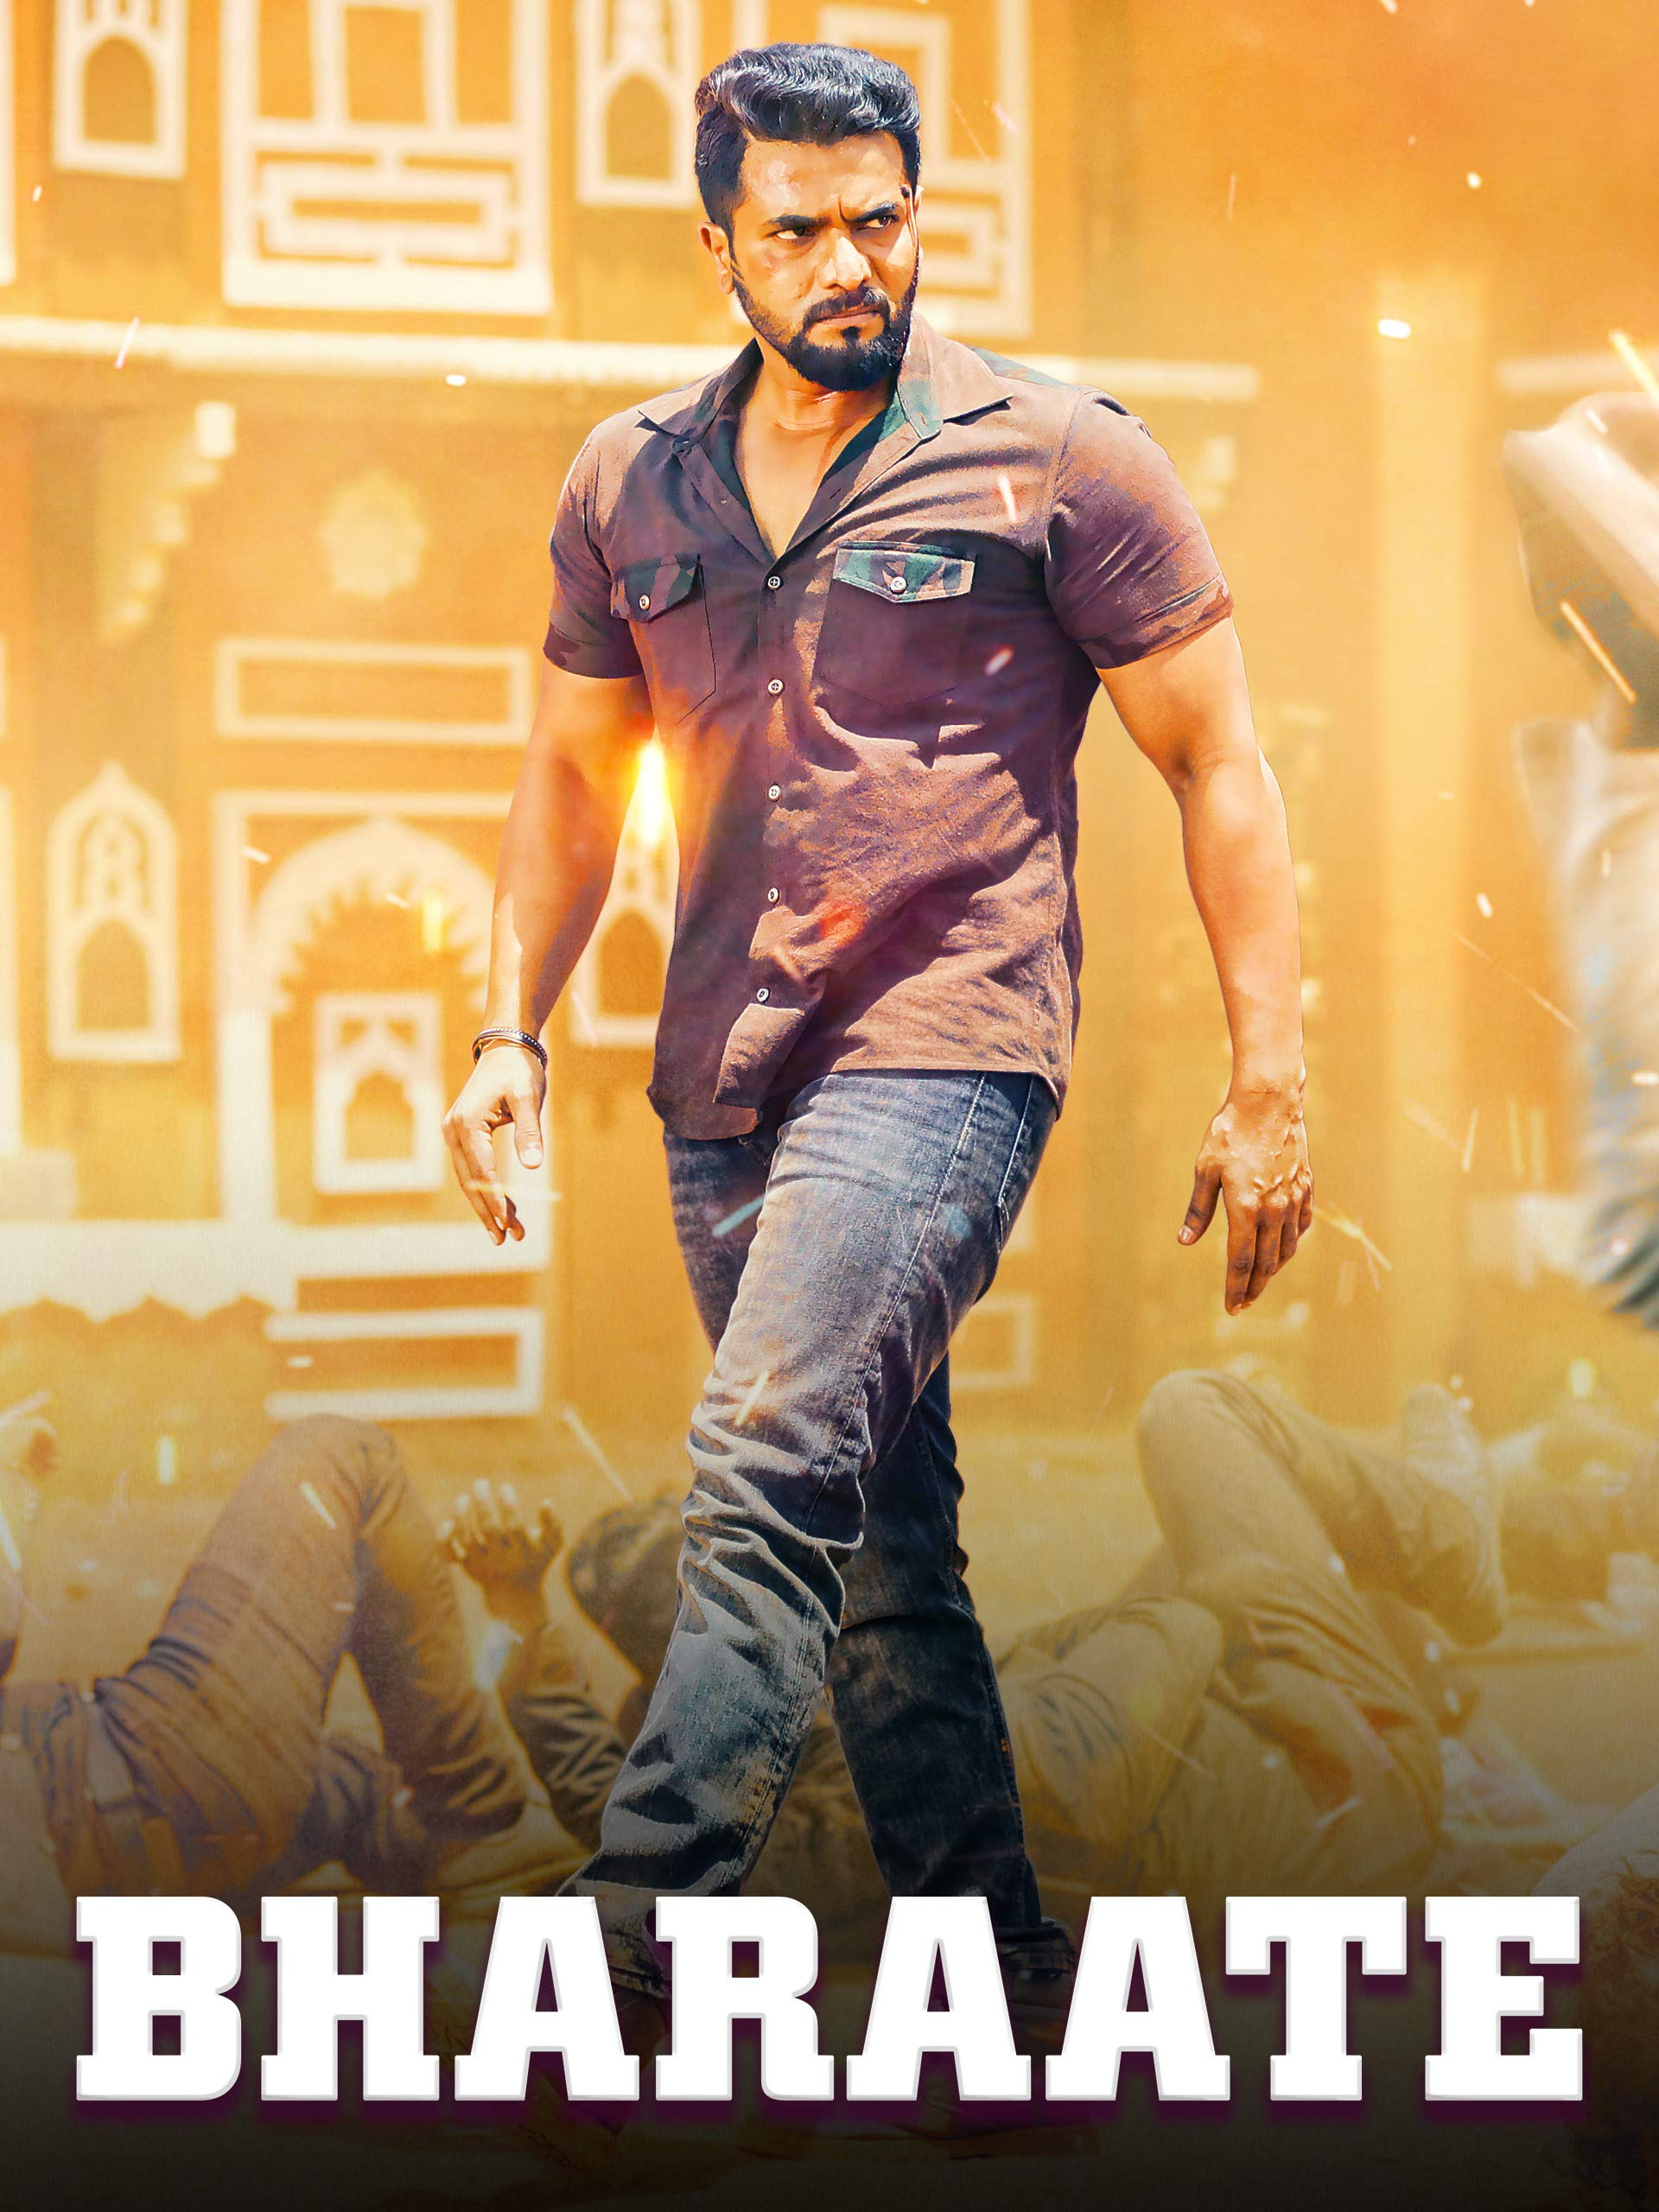 Bharaate 2020 Hindi Dubbed 720p HDRip 900MB Download